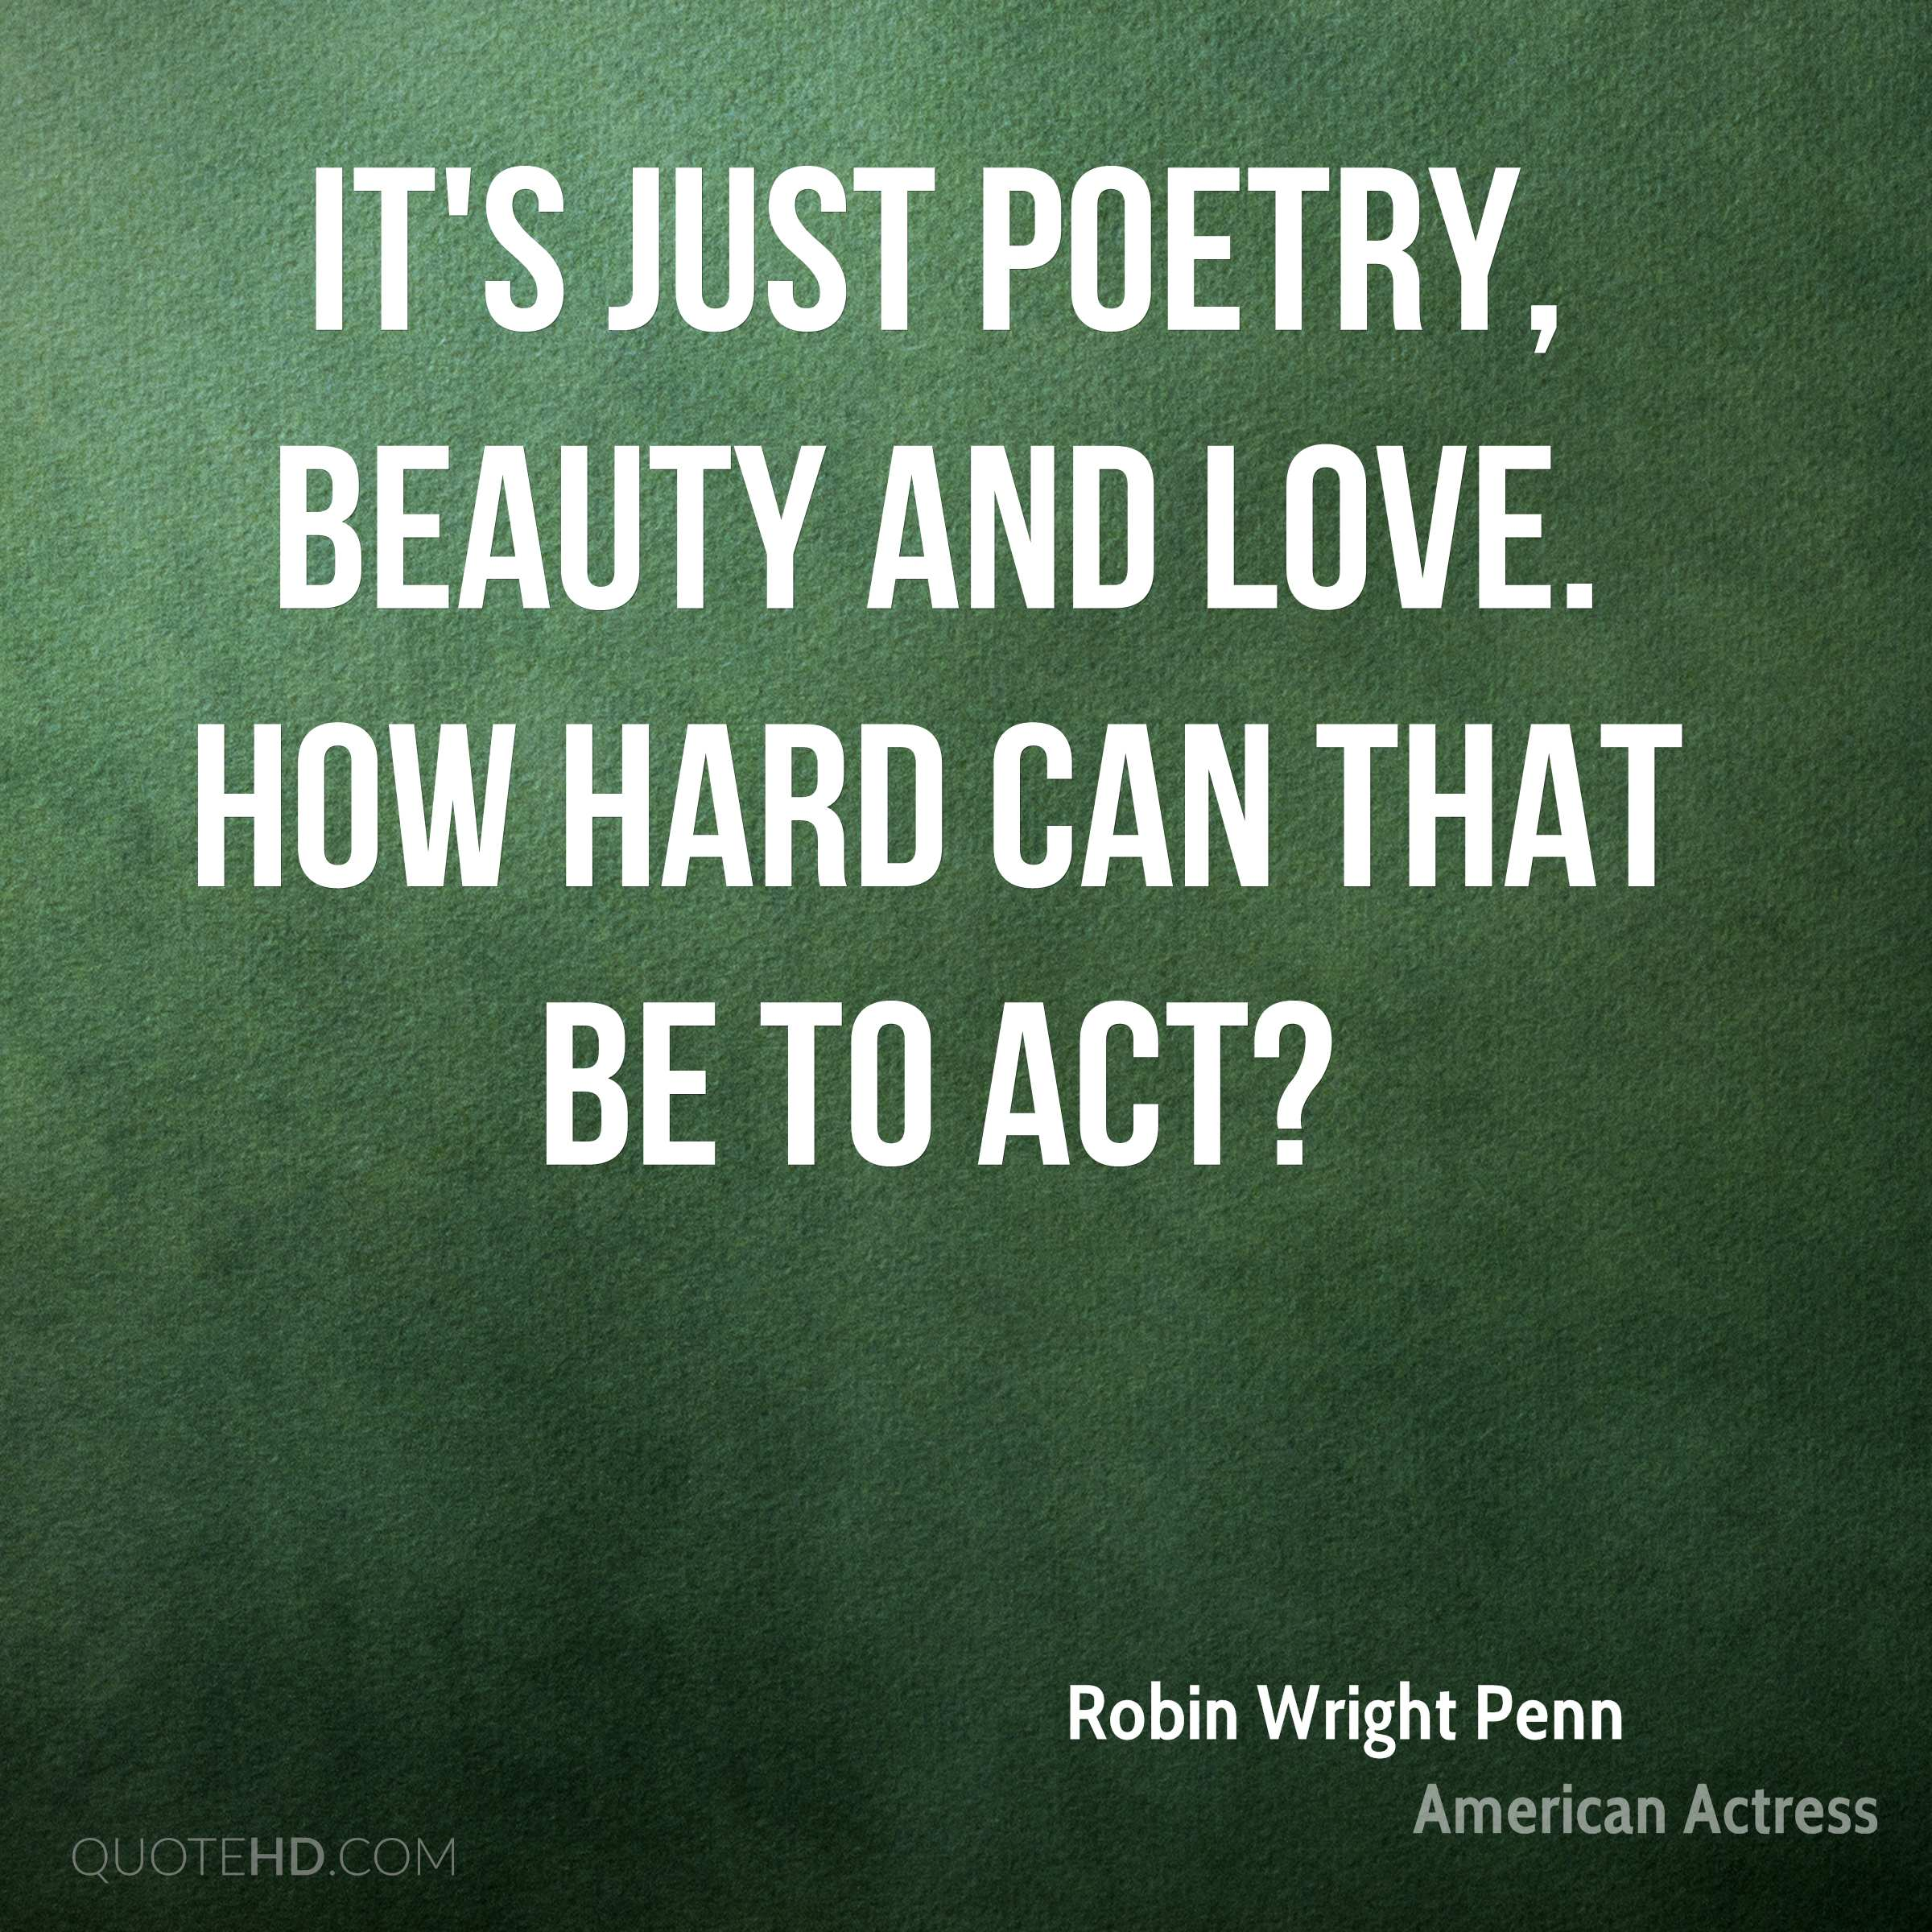 It's just poetry, beauty and love. How hard can that be to act?